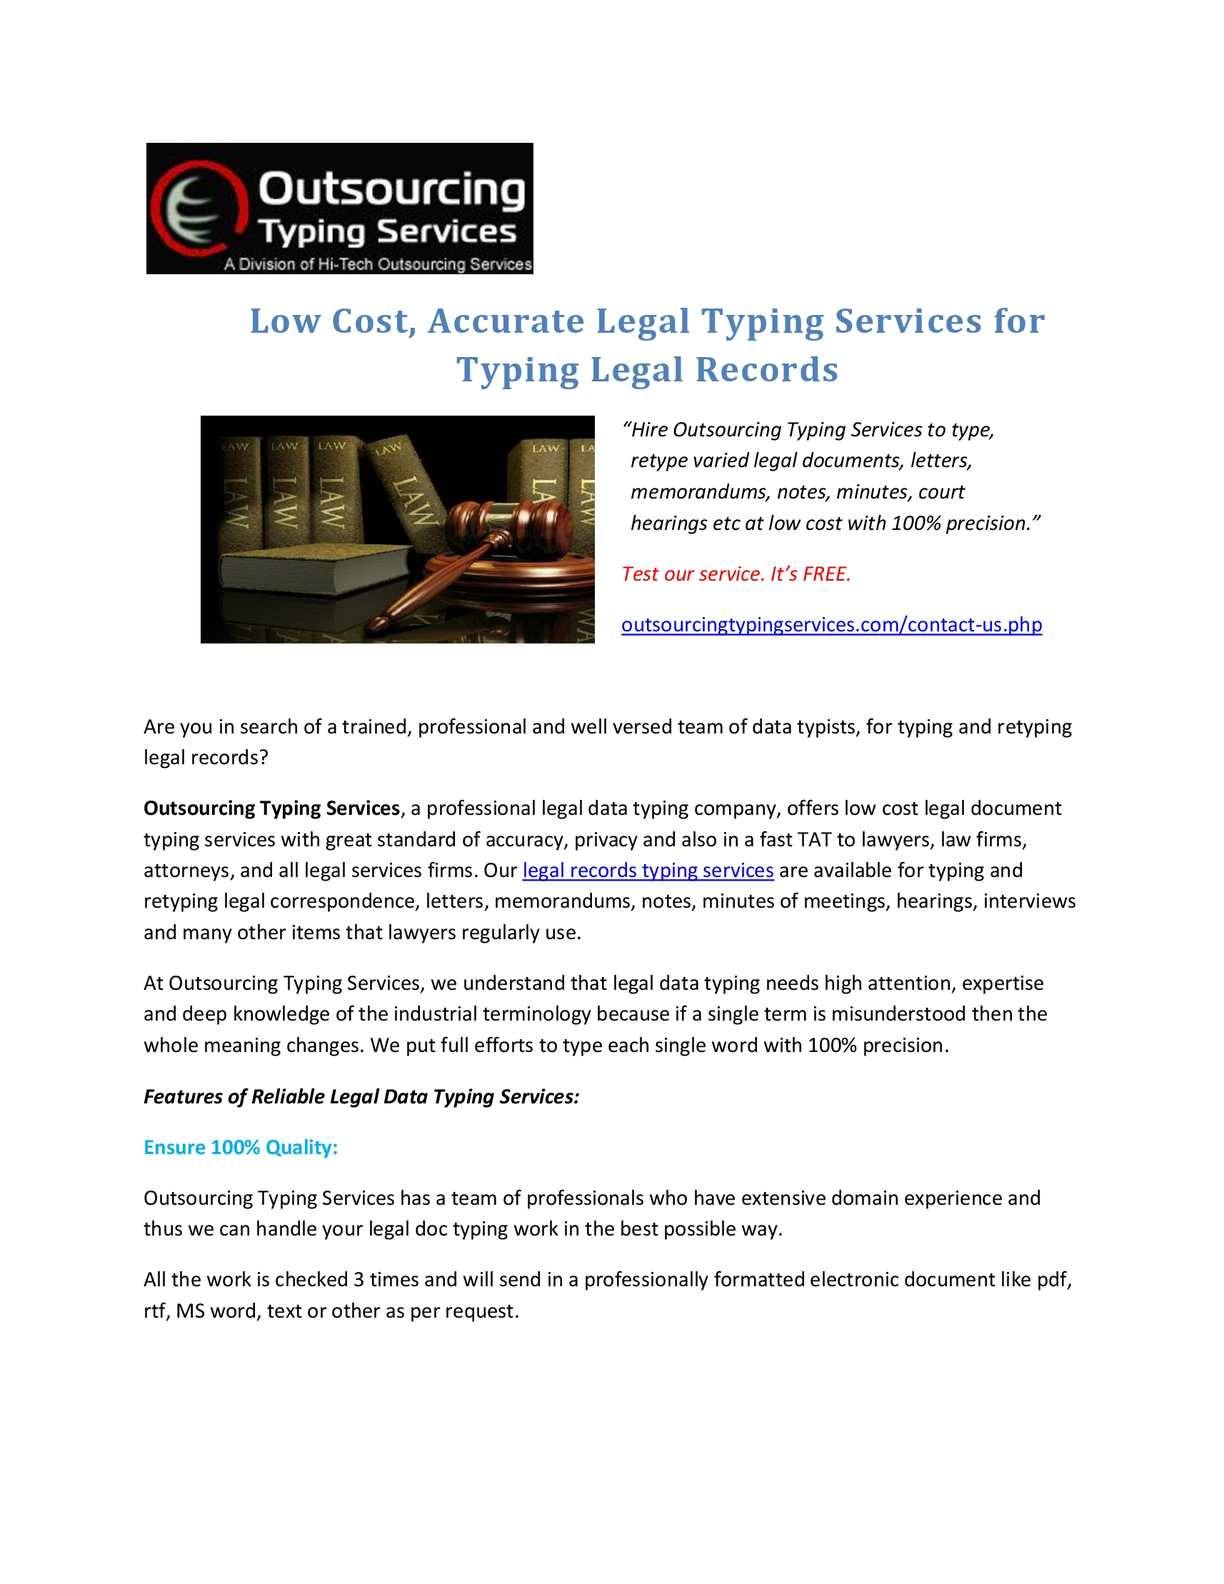 Calaméo Low Cost Accurate Legal Typing Services For Typing Legal - Legal type documents